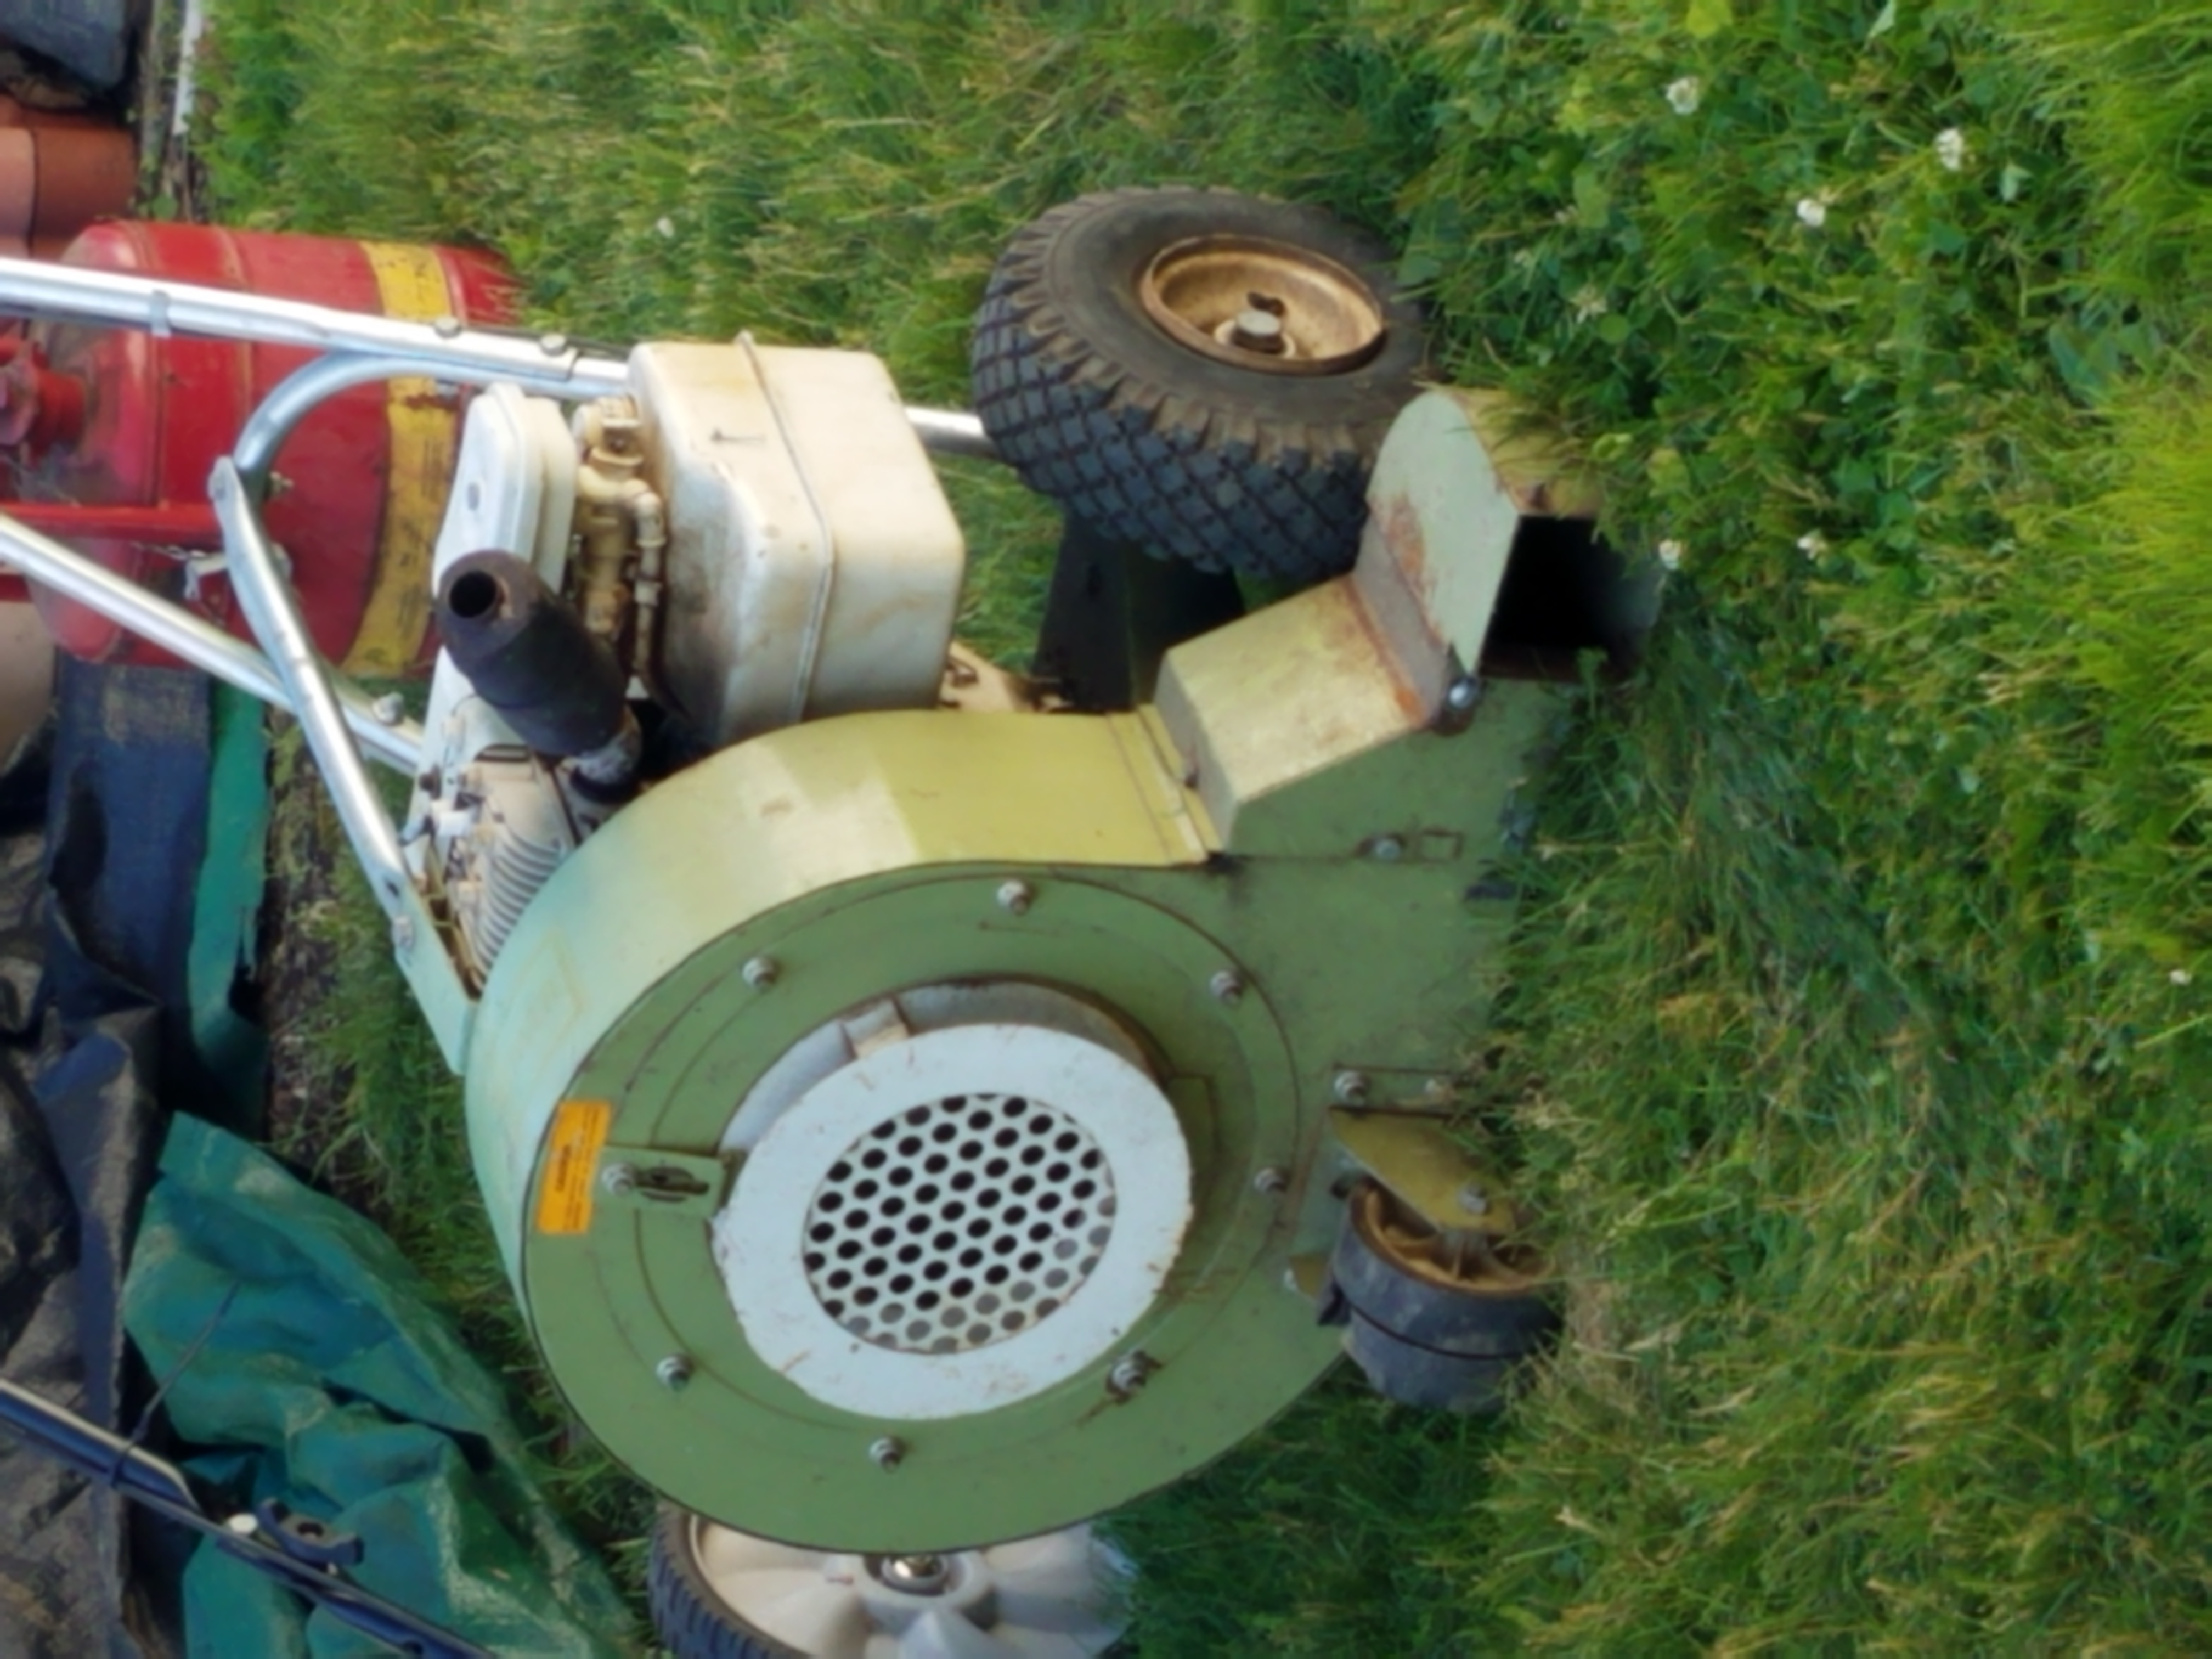 Leave blower for sale in Poughkeepsie NY